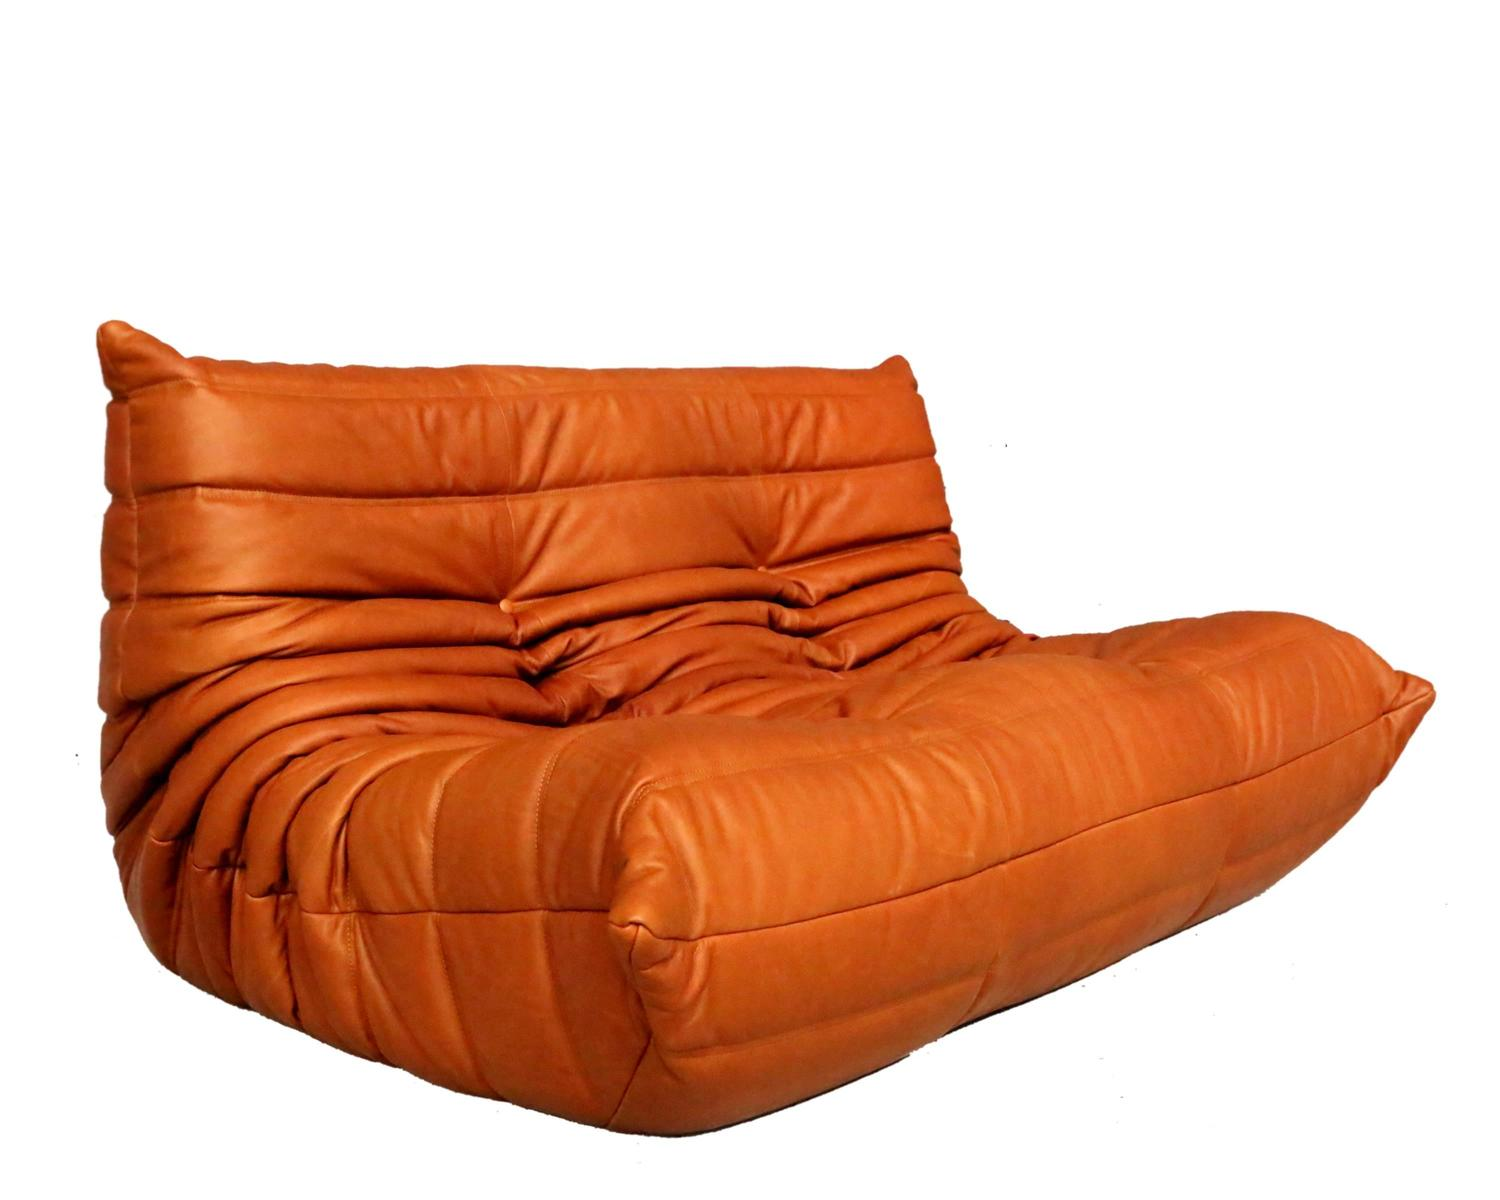 cognac leather ligne roset togo sofa set designed by. Black Bedroom Furniture Sets. Home Design Ideas